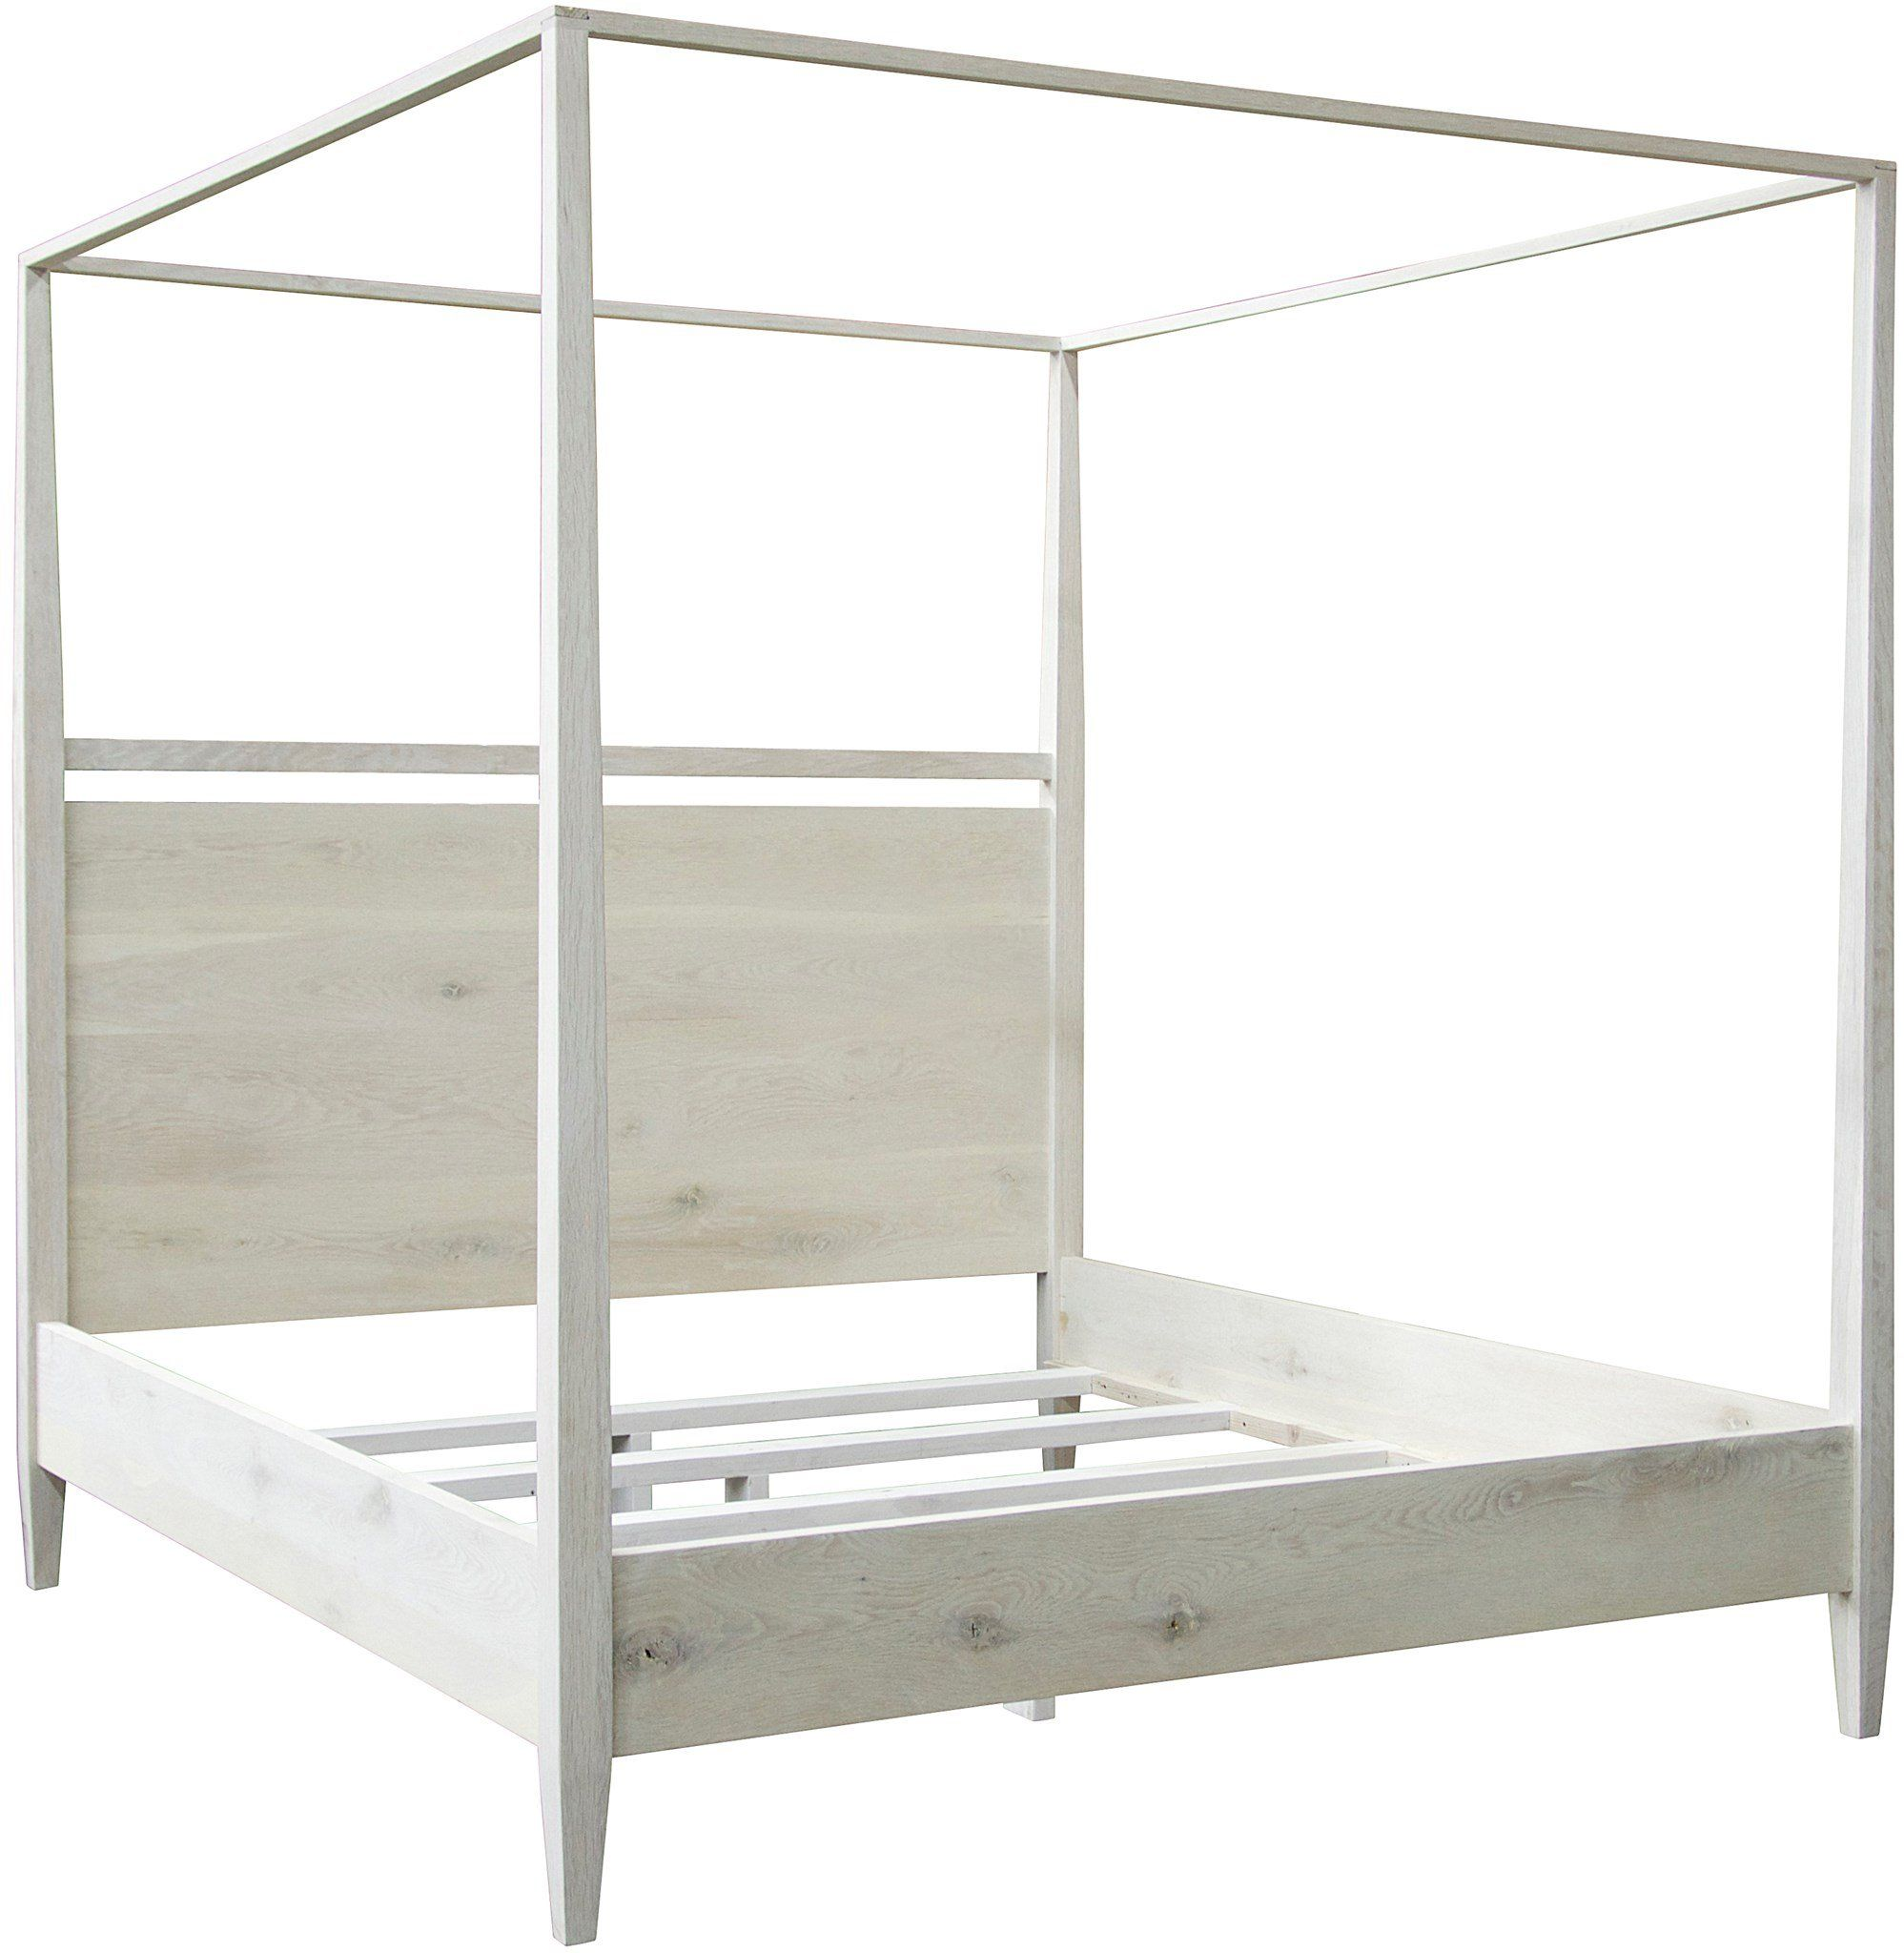 Eastern King White Wash Poster Bed Oak Beds Headboards For Beds 4 Poster Beds